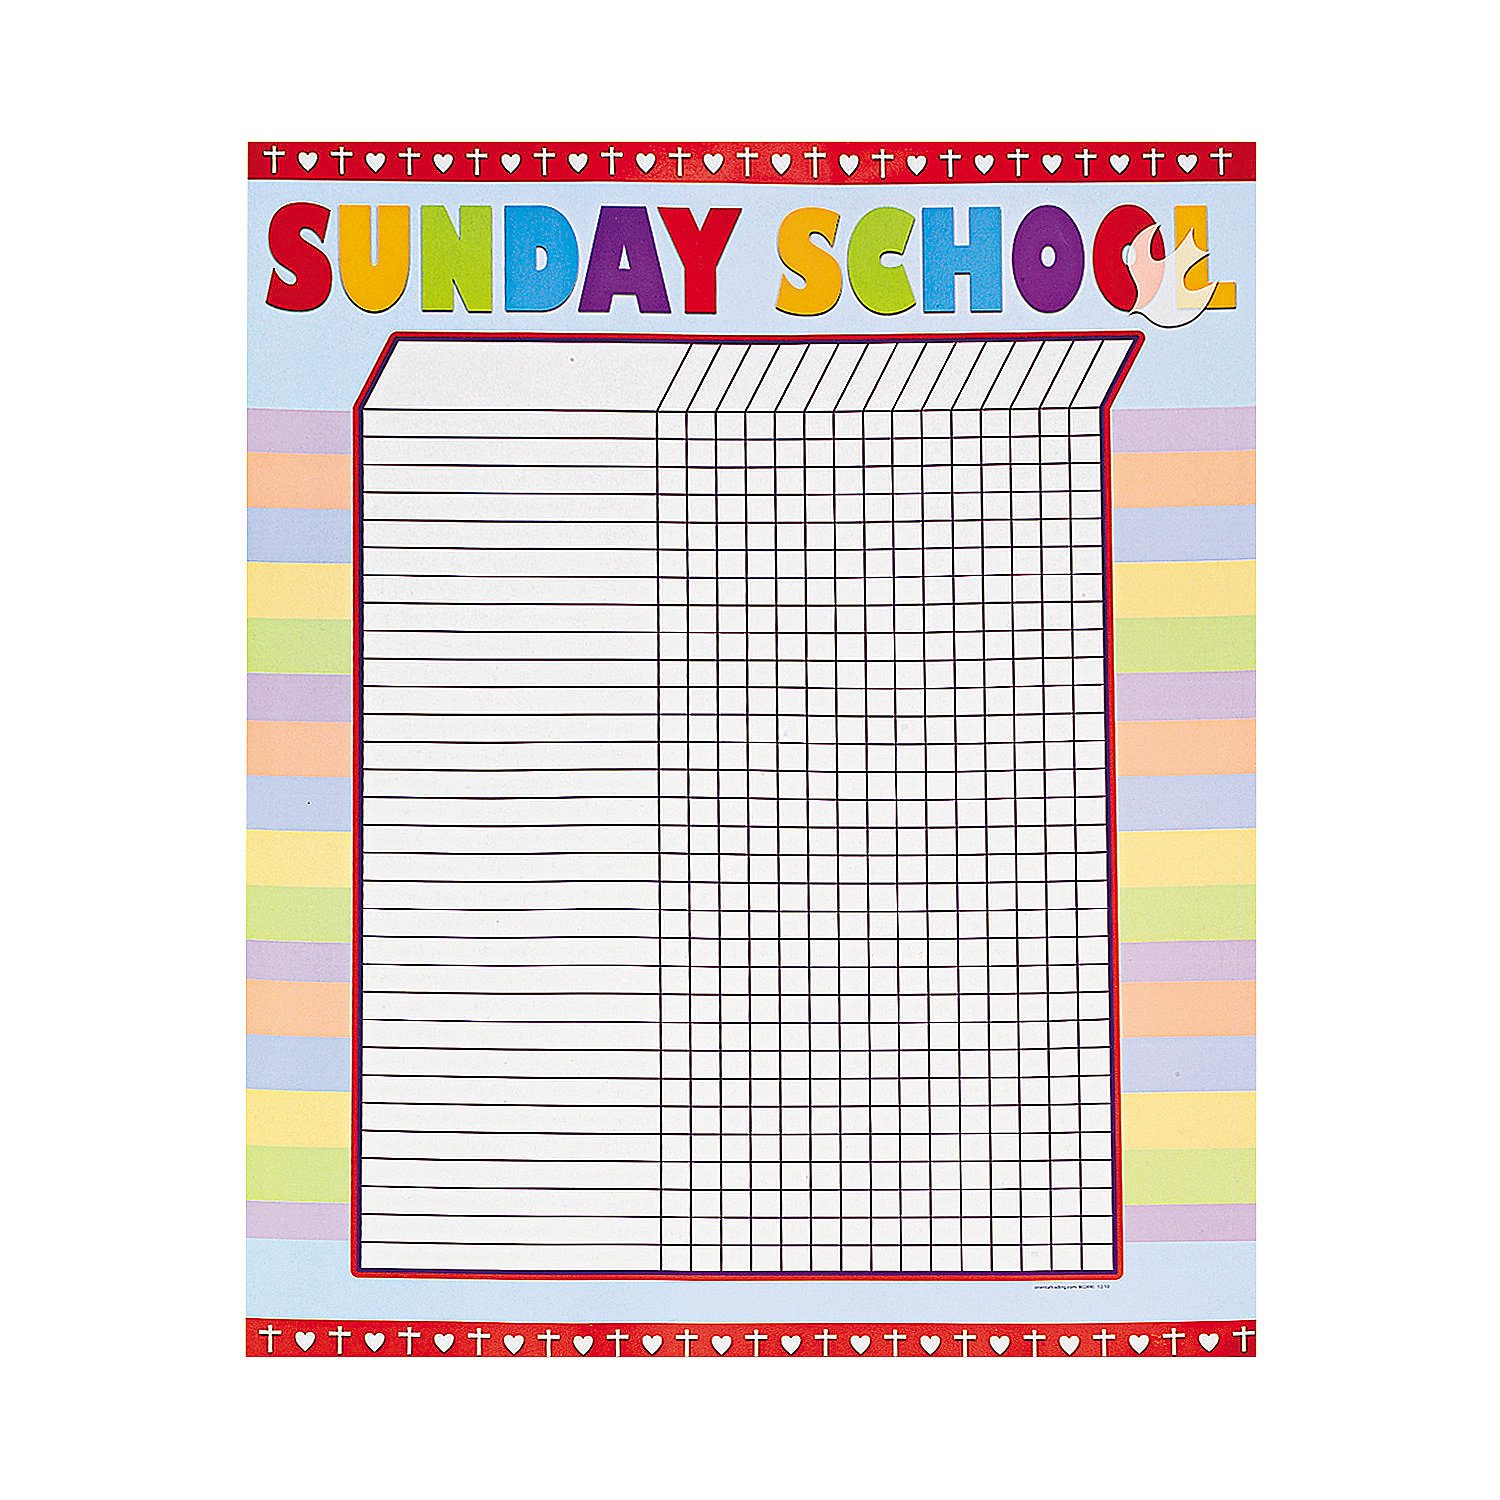 free printable attendance charts for sunday school hd images – Free Printable Attendance Chart